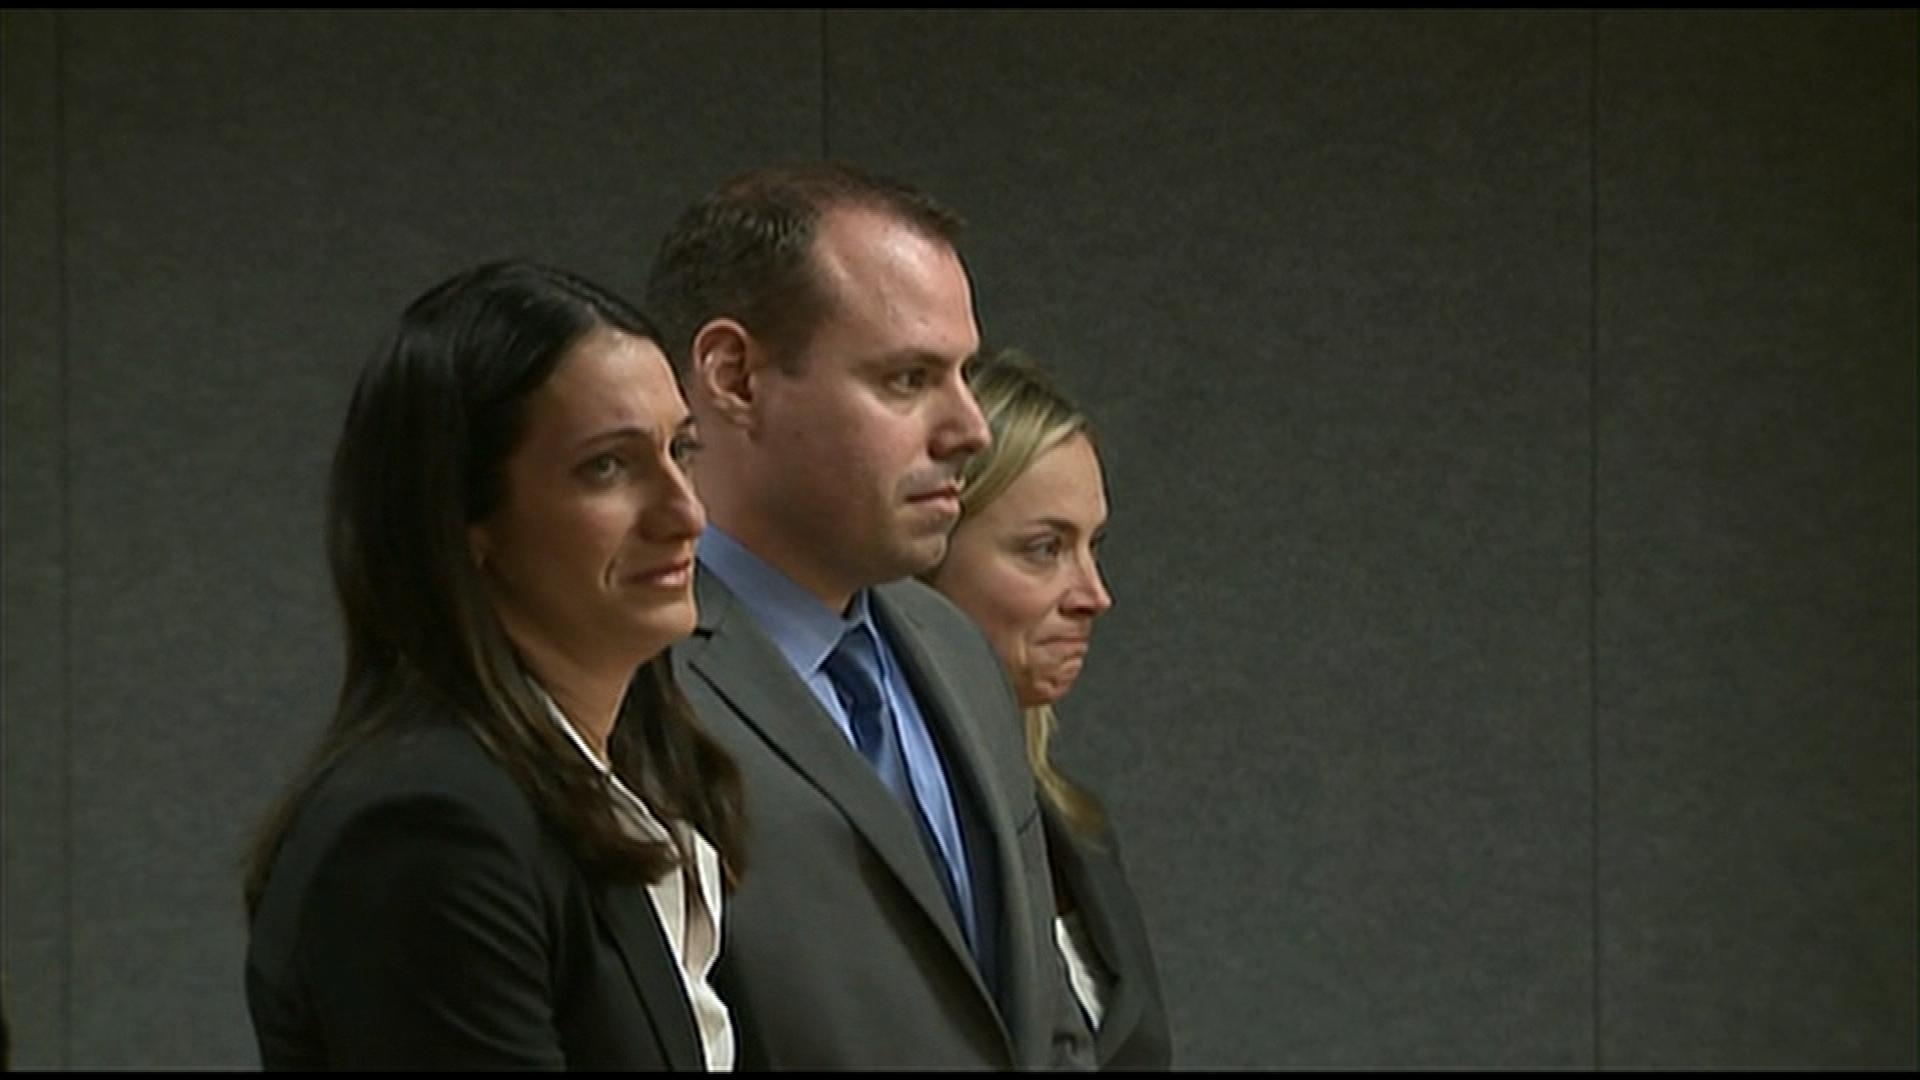 Tom Fallis in court (credit: CBS)